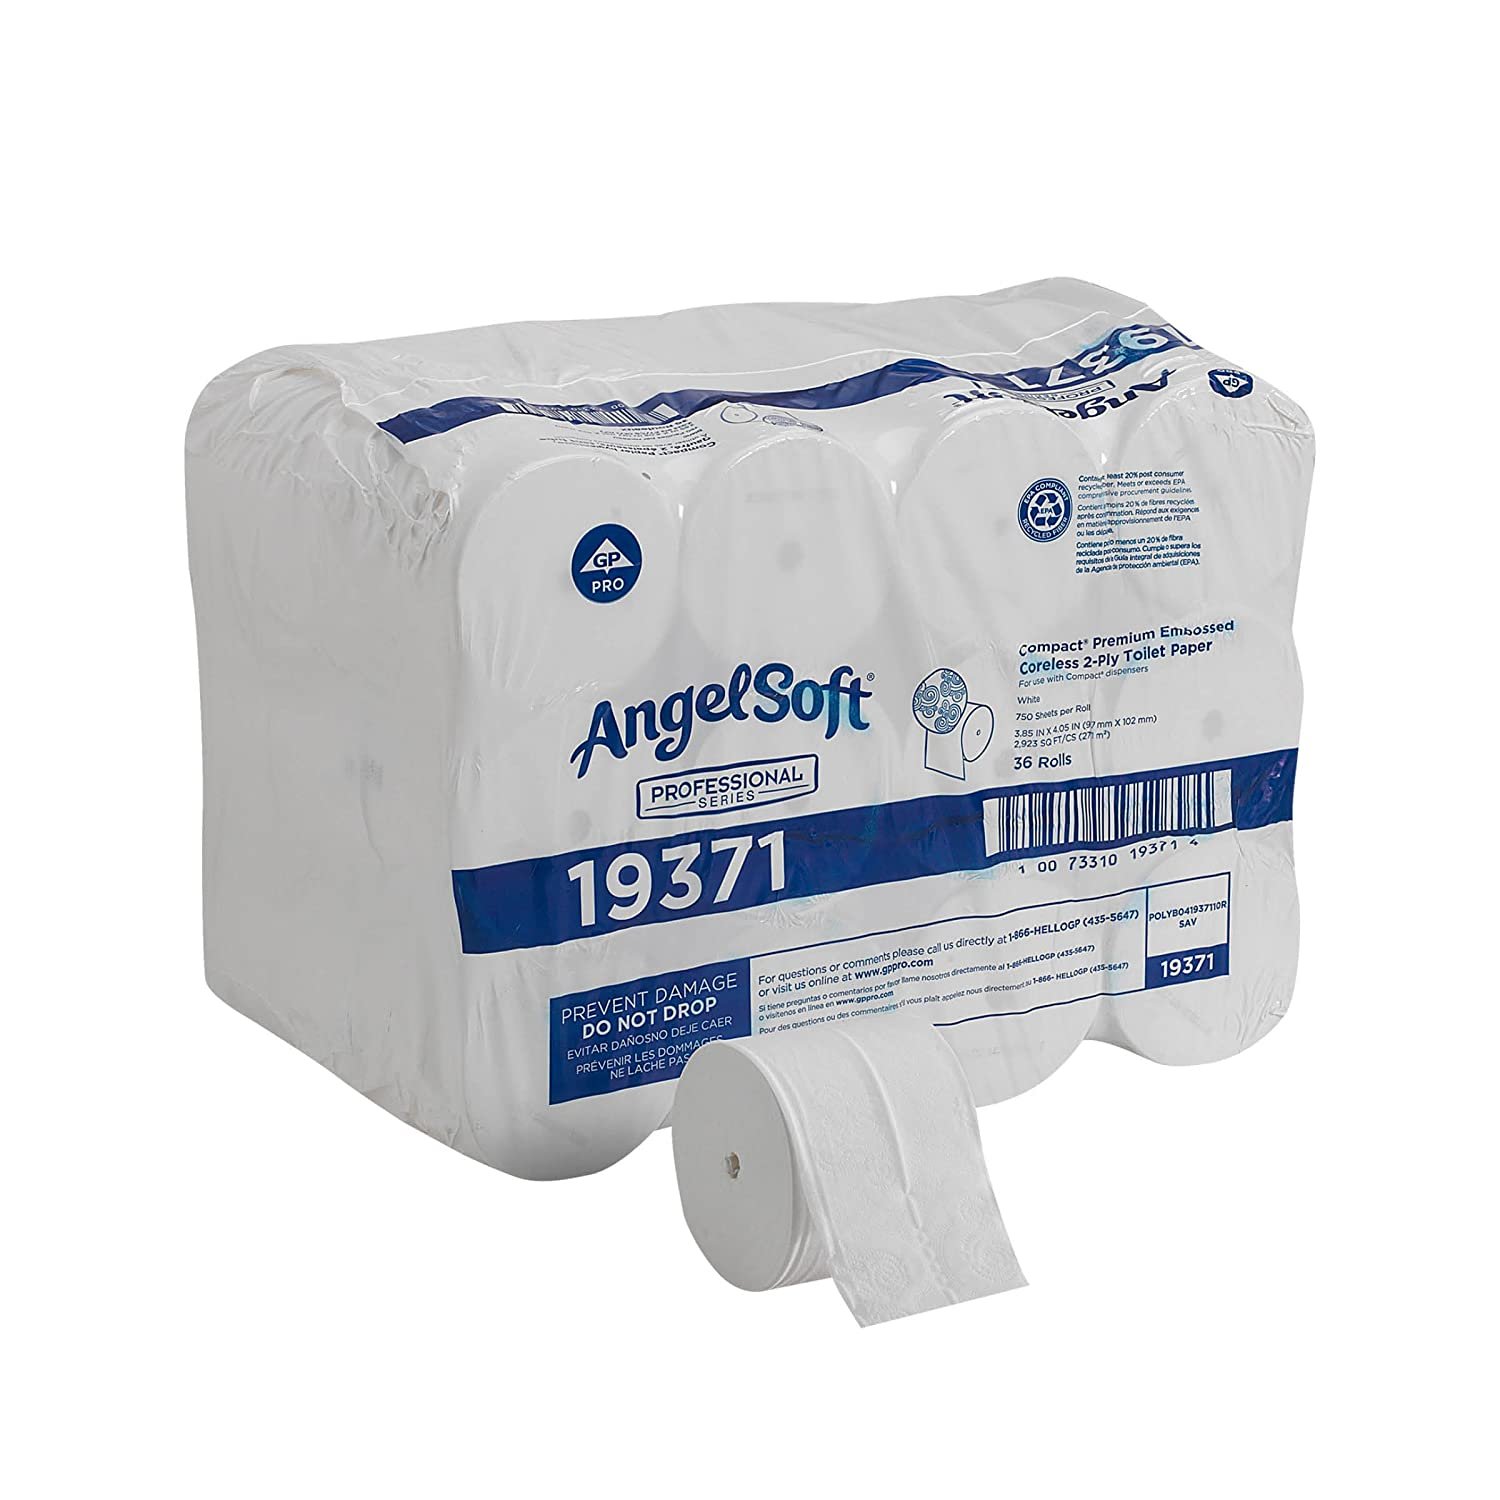 Angel Soft ps 193-71 Compact 4.05' Length, 3.85' Width, 4.75' Roll Diameter Coreless 2-Ply Premium Bathroom Tissue (Roll of 36) 3.85 Width 4.75 Roll Diameter Coreless 2-Ply Premium Bathroom Tissue (Roll of 36) Georgia Pacific 19371